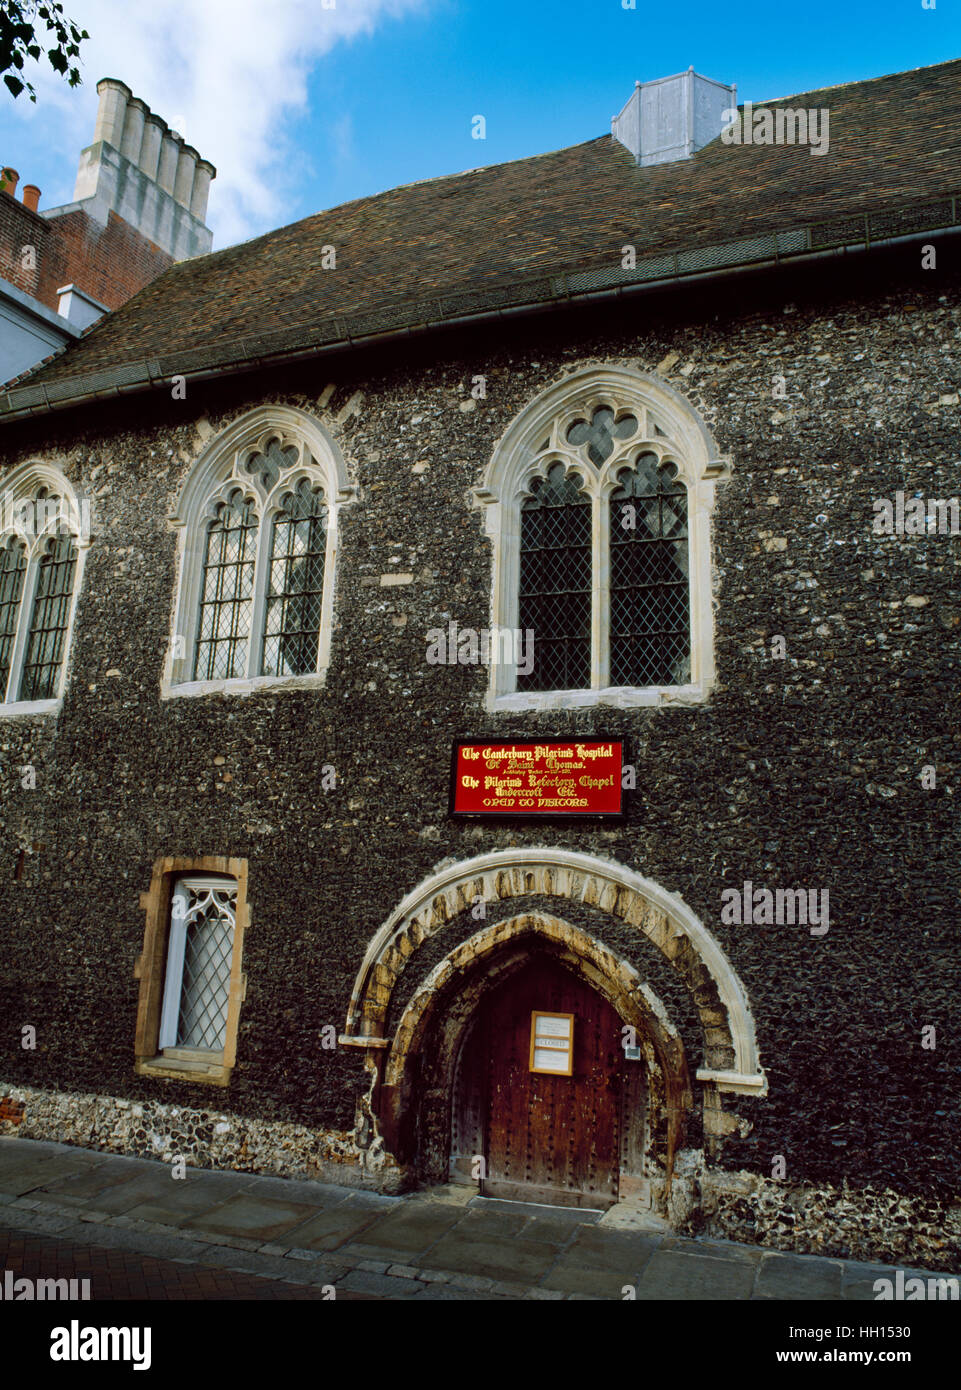 Eastbridge Hospital of St Thomas the Martyr, Canterbury: chapel & hostel for pilgrims founded 1180 & enlarged - Stock Image